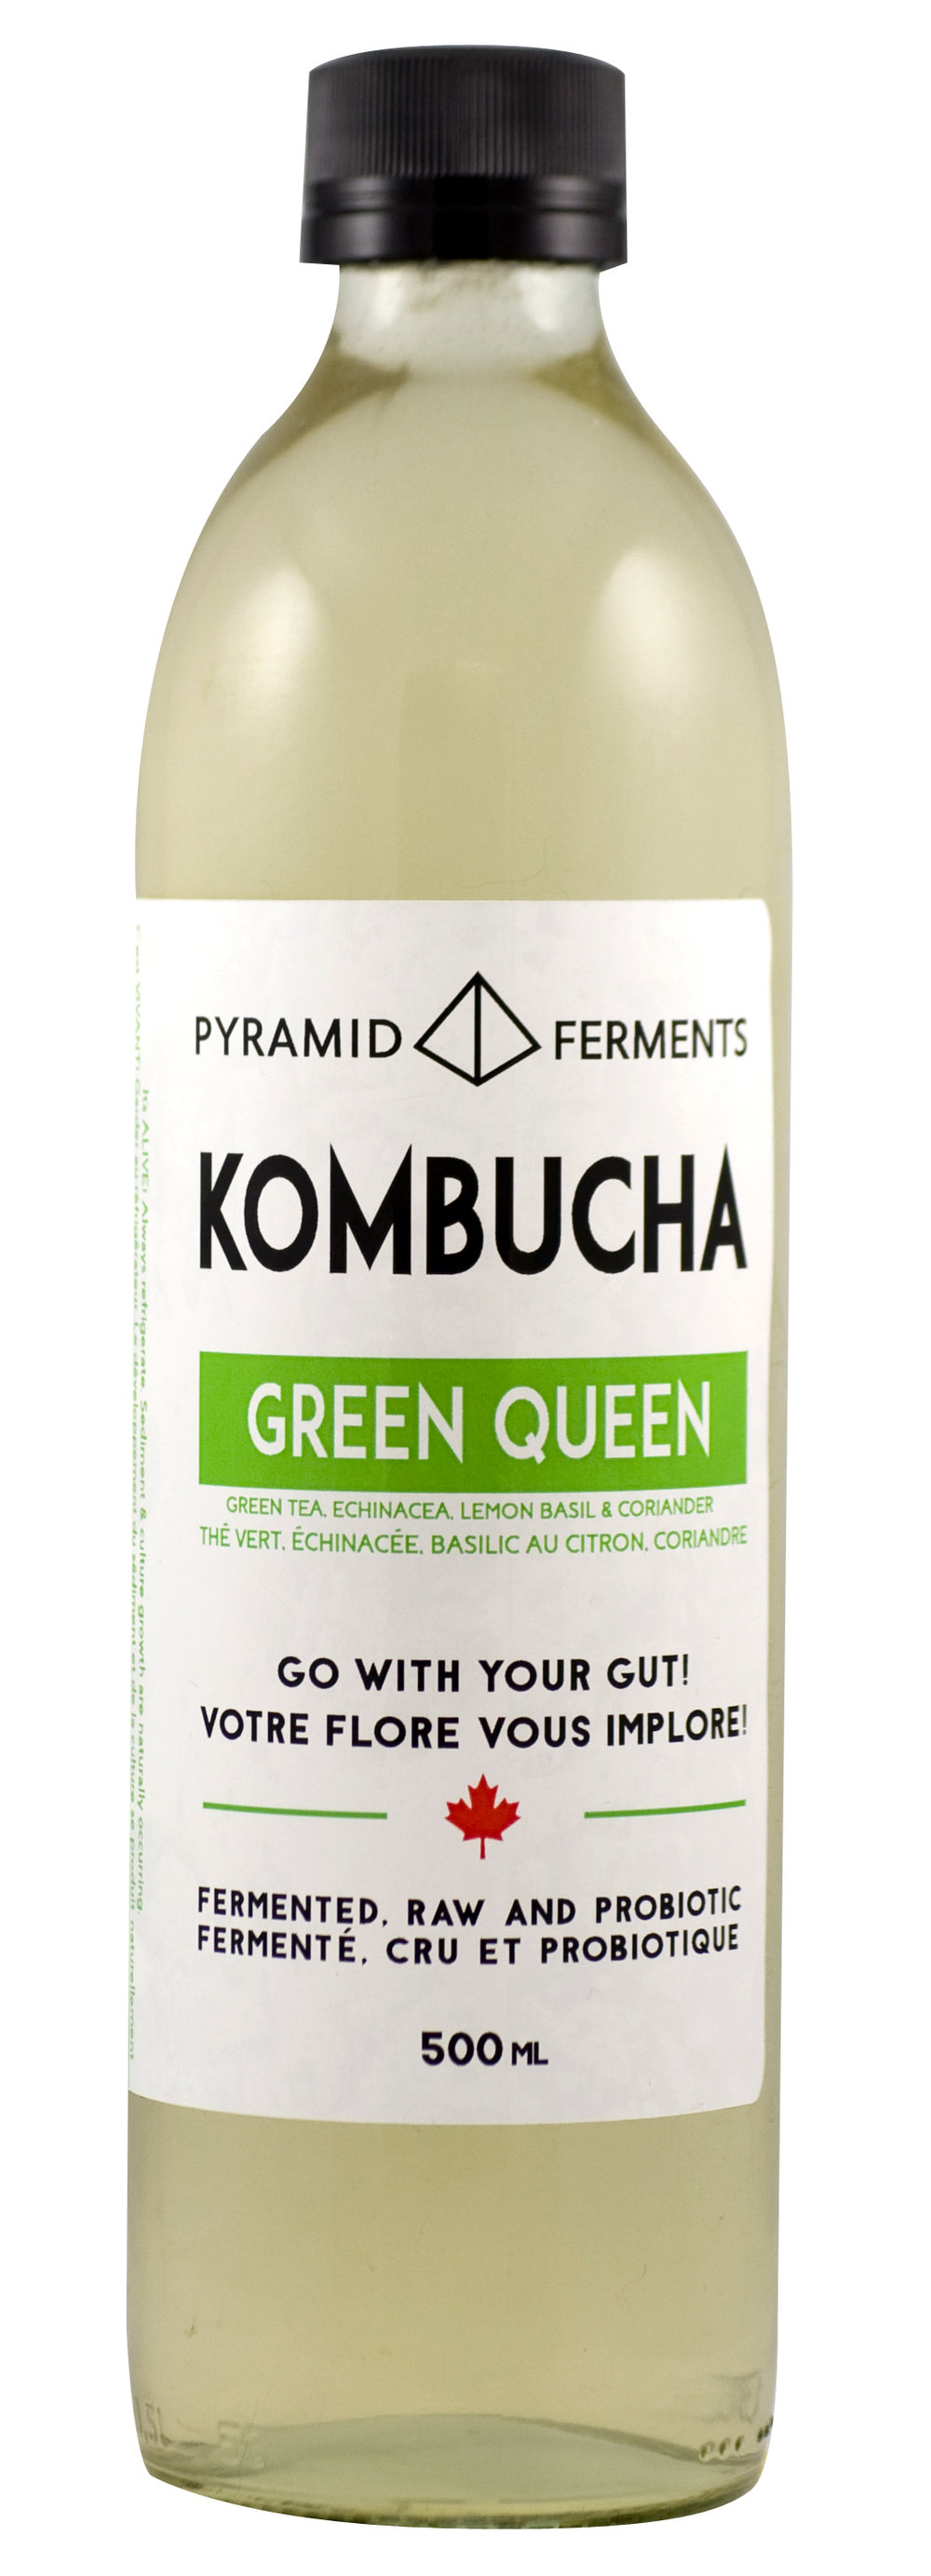 Green Queen Kombucha